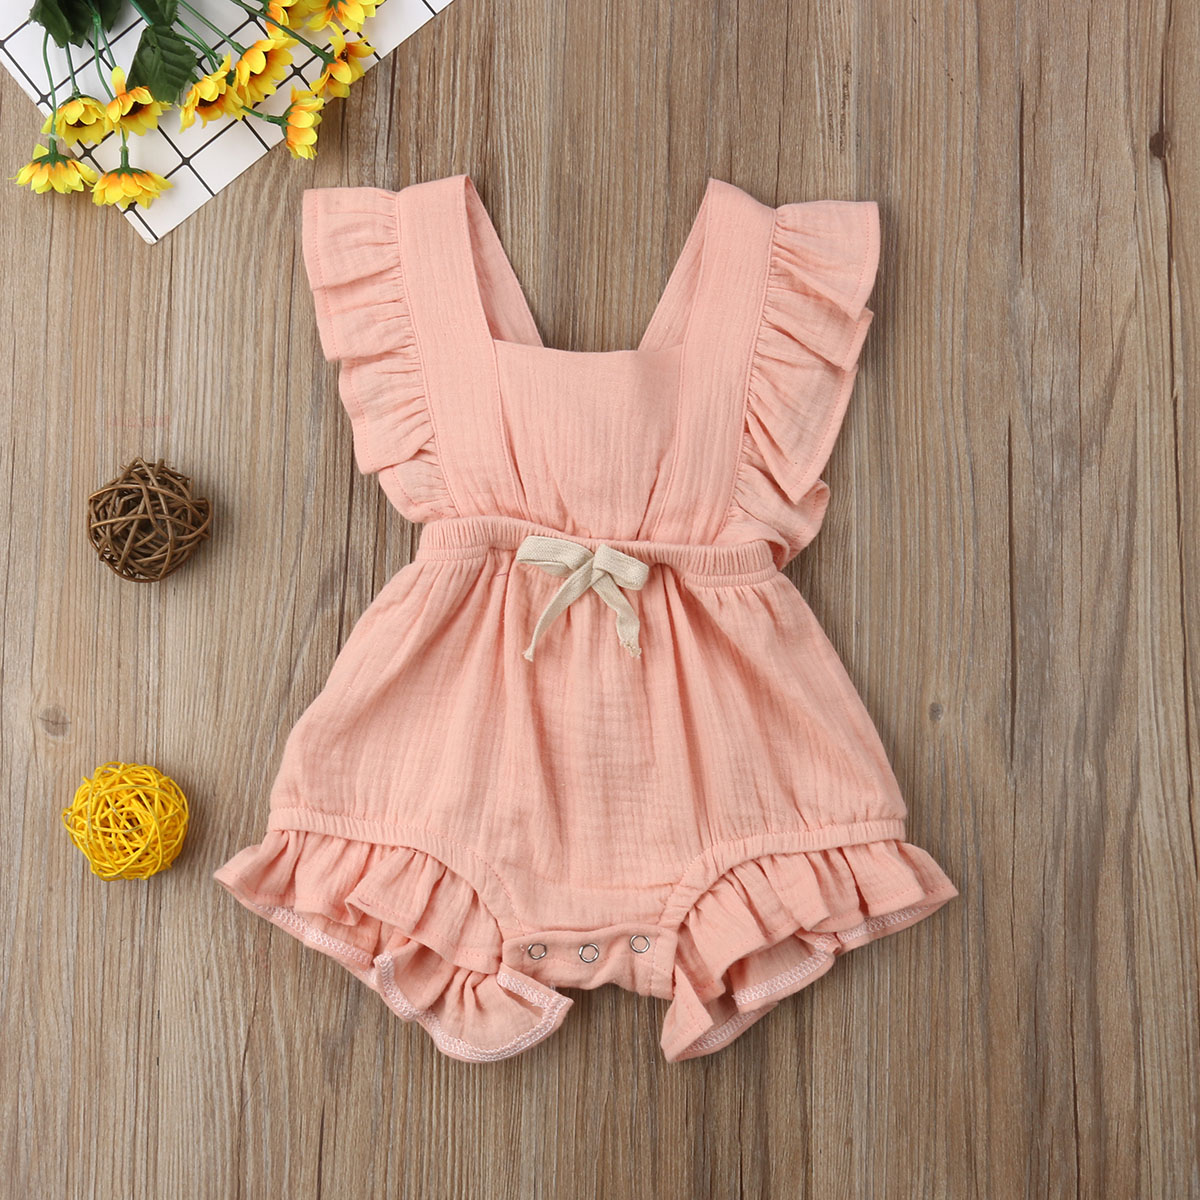 HTB1rrZMa2jsK1Rjy1Xaq6zispXab 13 Styles Romper For Baby Girls Clothes Cute Print Jumpsuit Clothes Ifant Toddler Newborn Outfits Hot Sale Baby Romper Playsuit